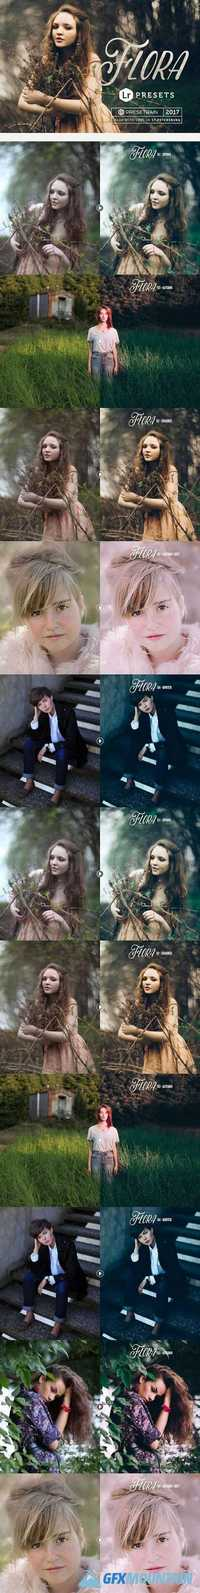 Flora Lightroom Preset Pack 1149697